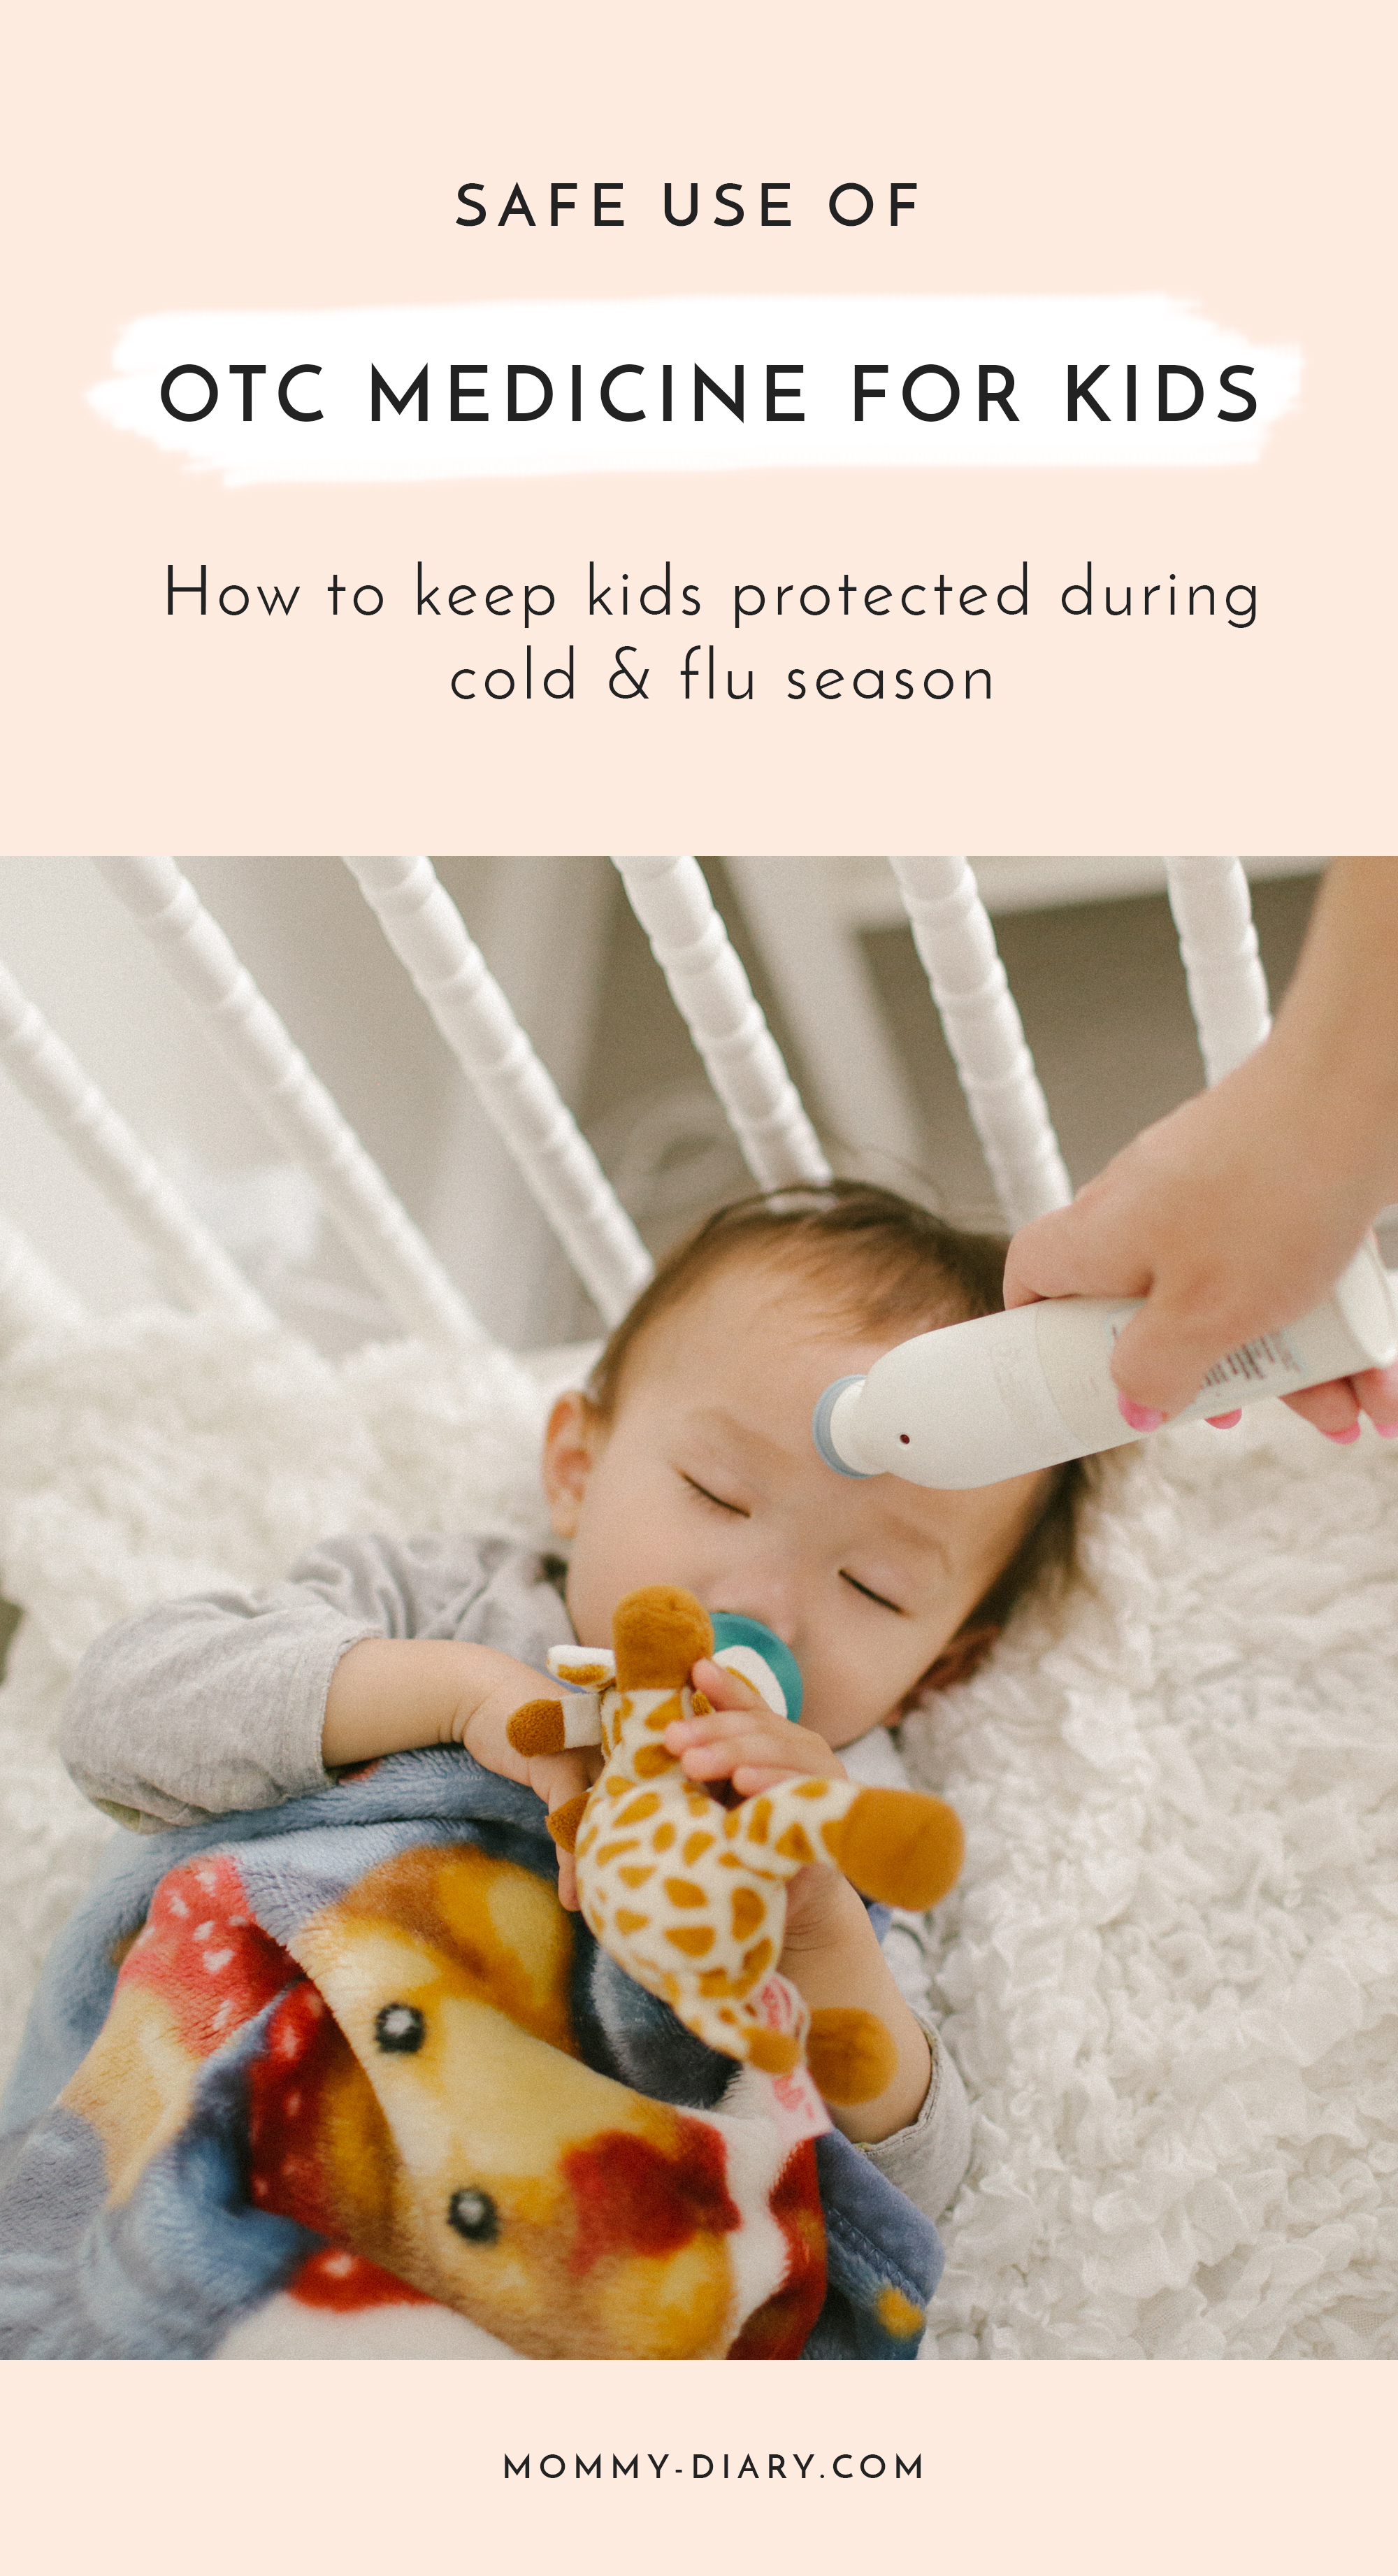 otc-safety-cold-flu-kids-cover